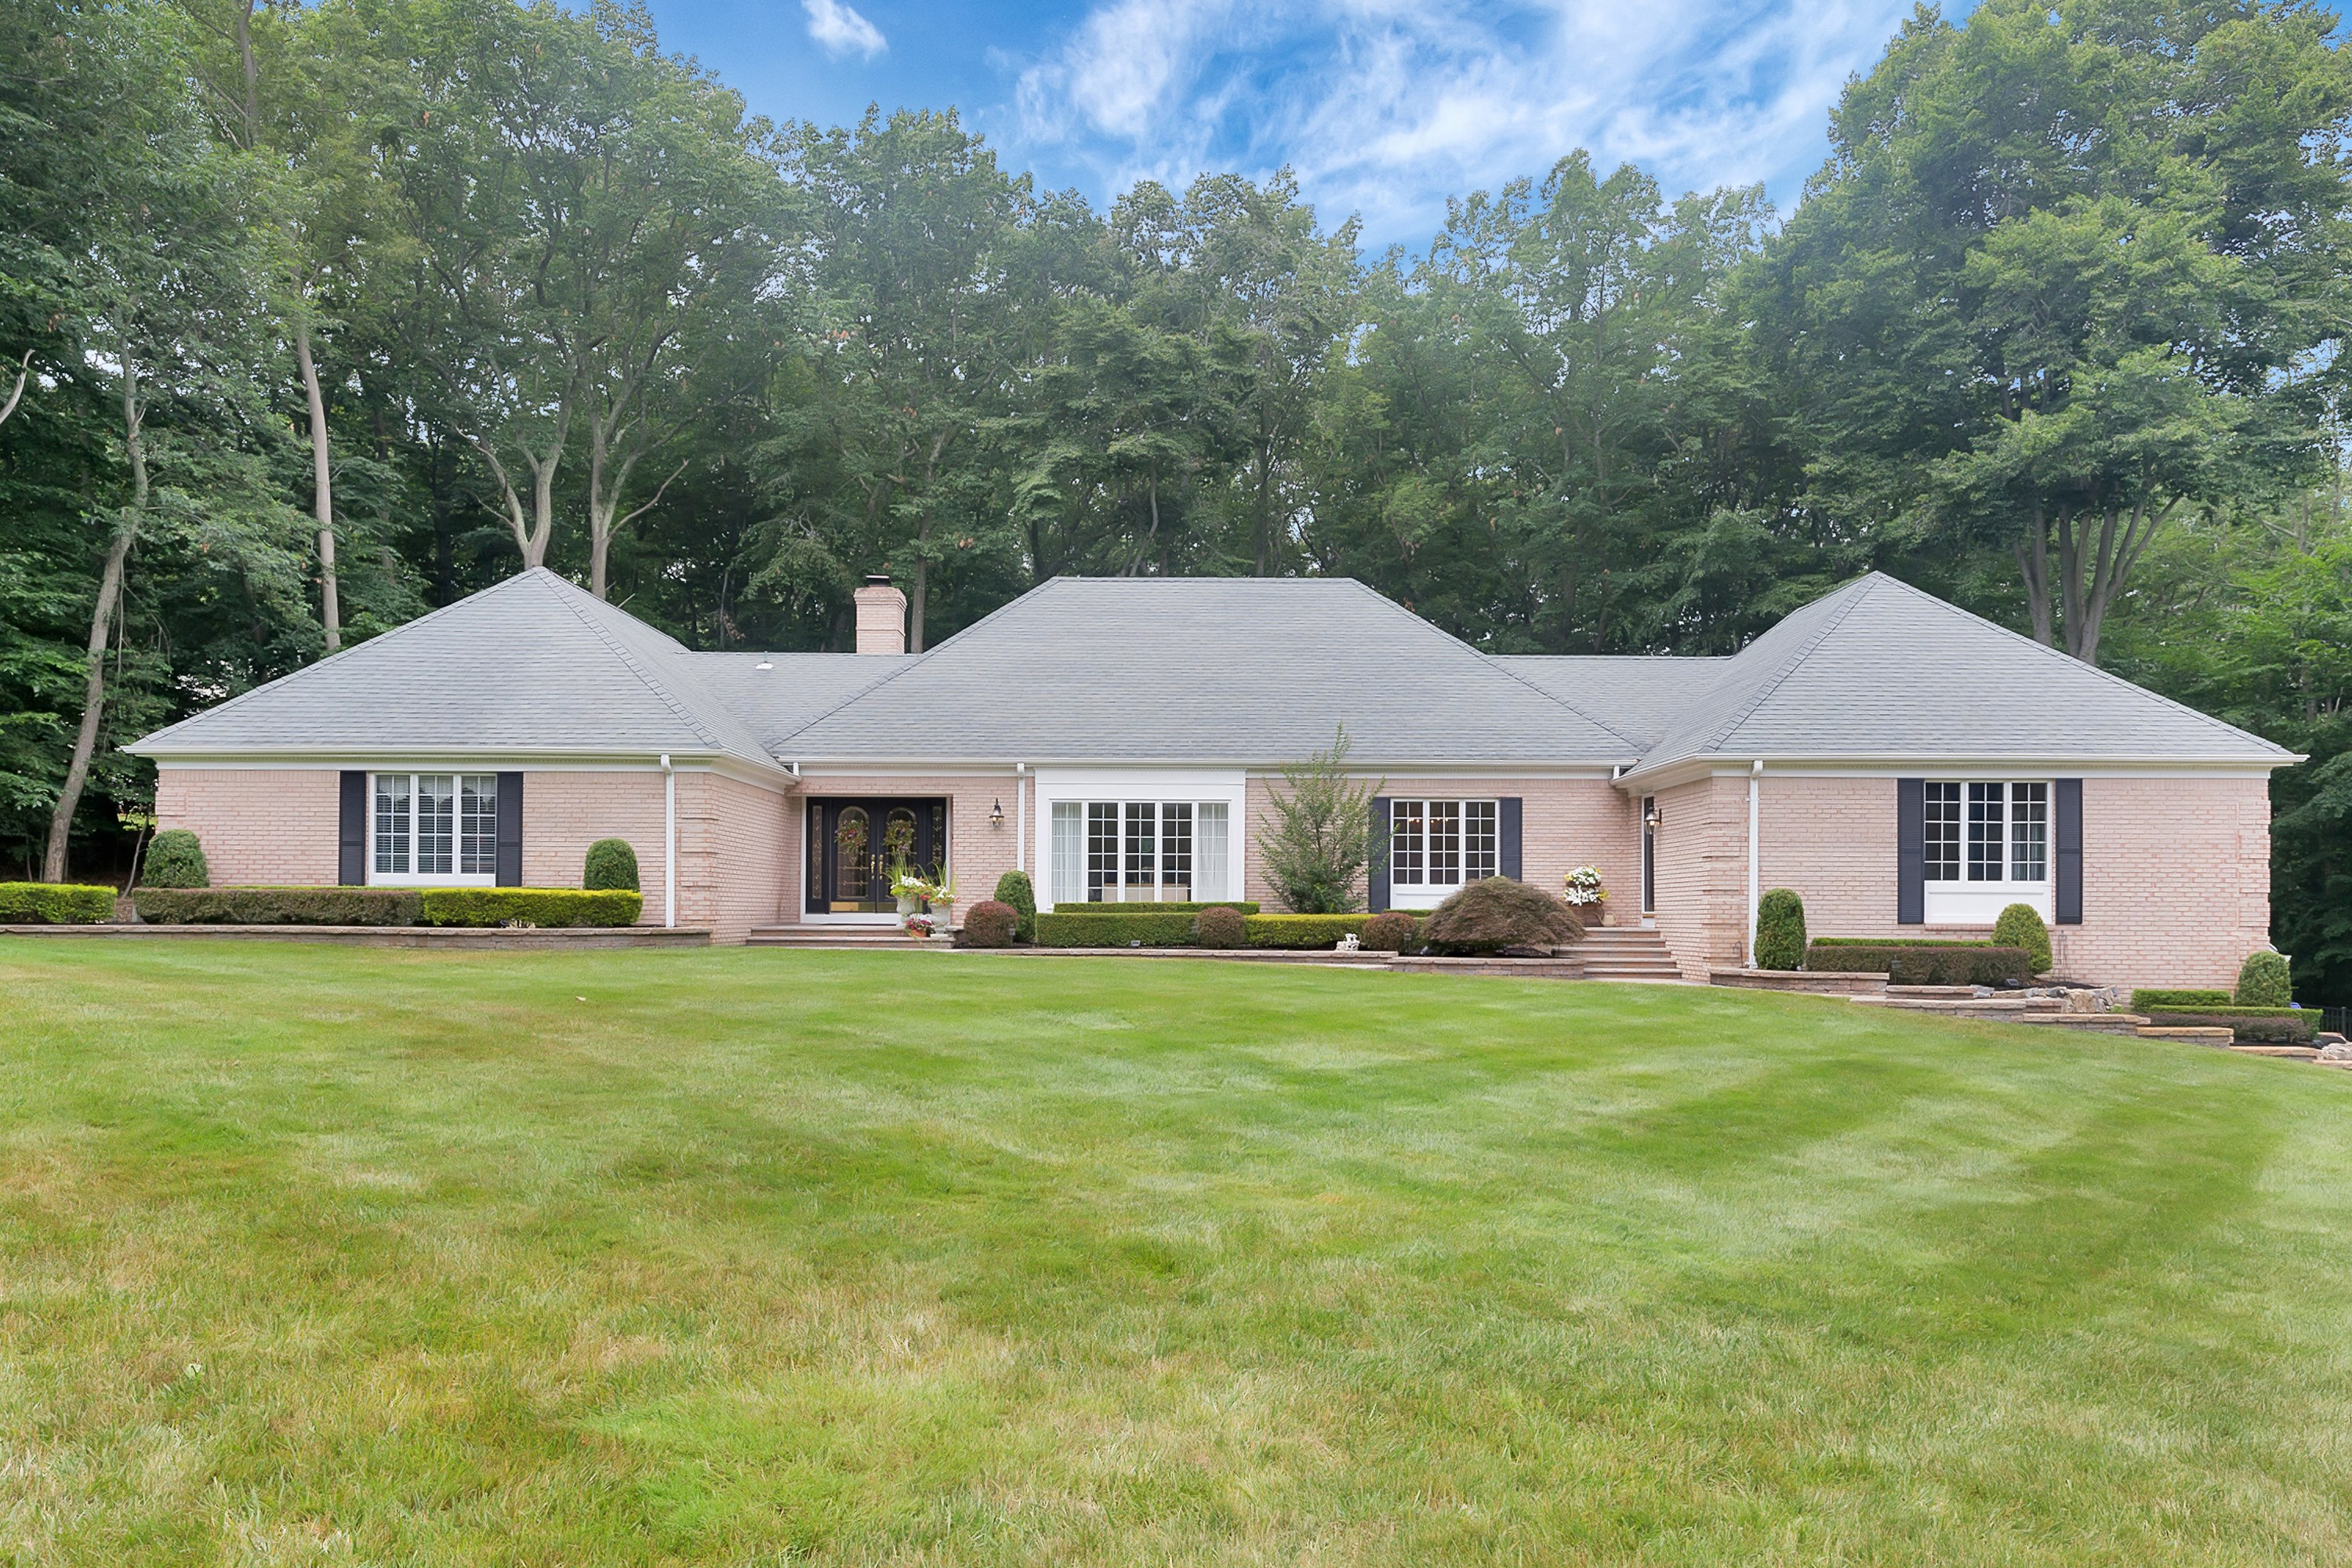 Casa Unifamiliar por un Venta en Elegant Expanded Ranch 16 Deep Wood Lane Colts Neck, Nueva Jersey, 07722 Estados Unidos